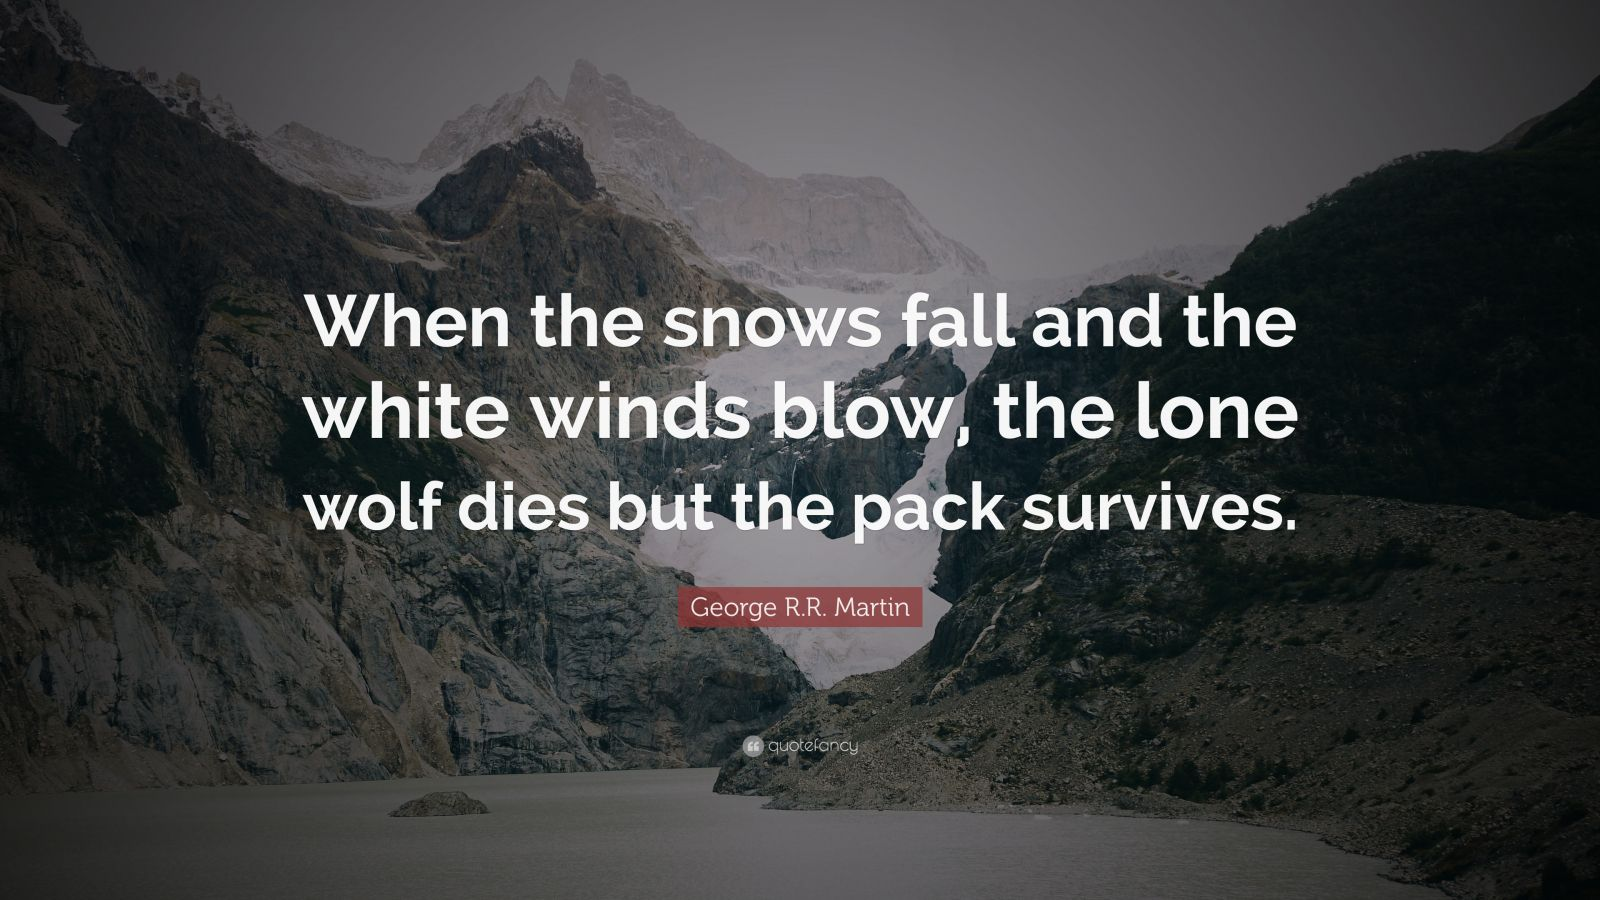 """George R.R. Martin Quote: """"When the snows fall and the white winds blow, the lone wolf dies but the pack survives."""""""